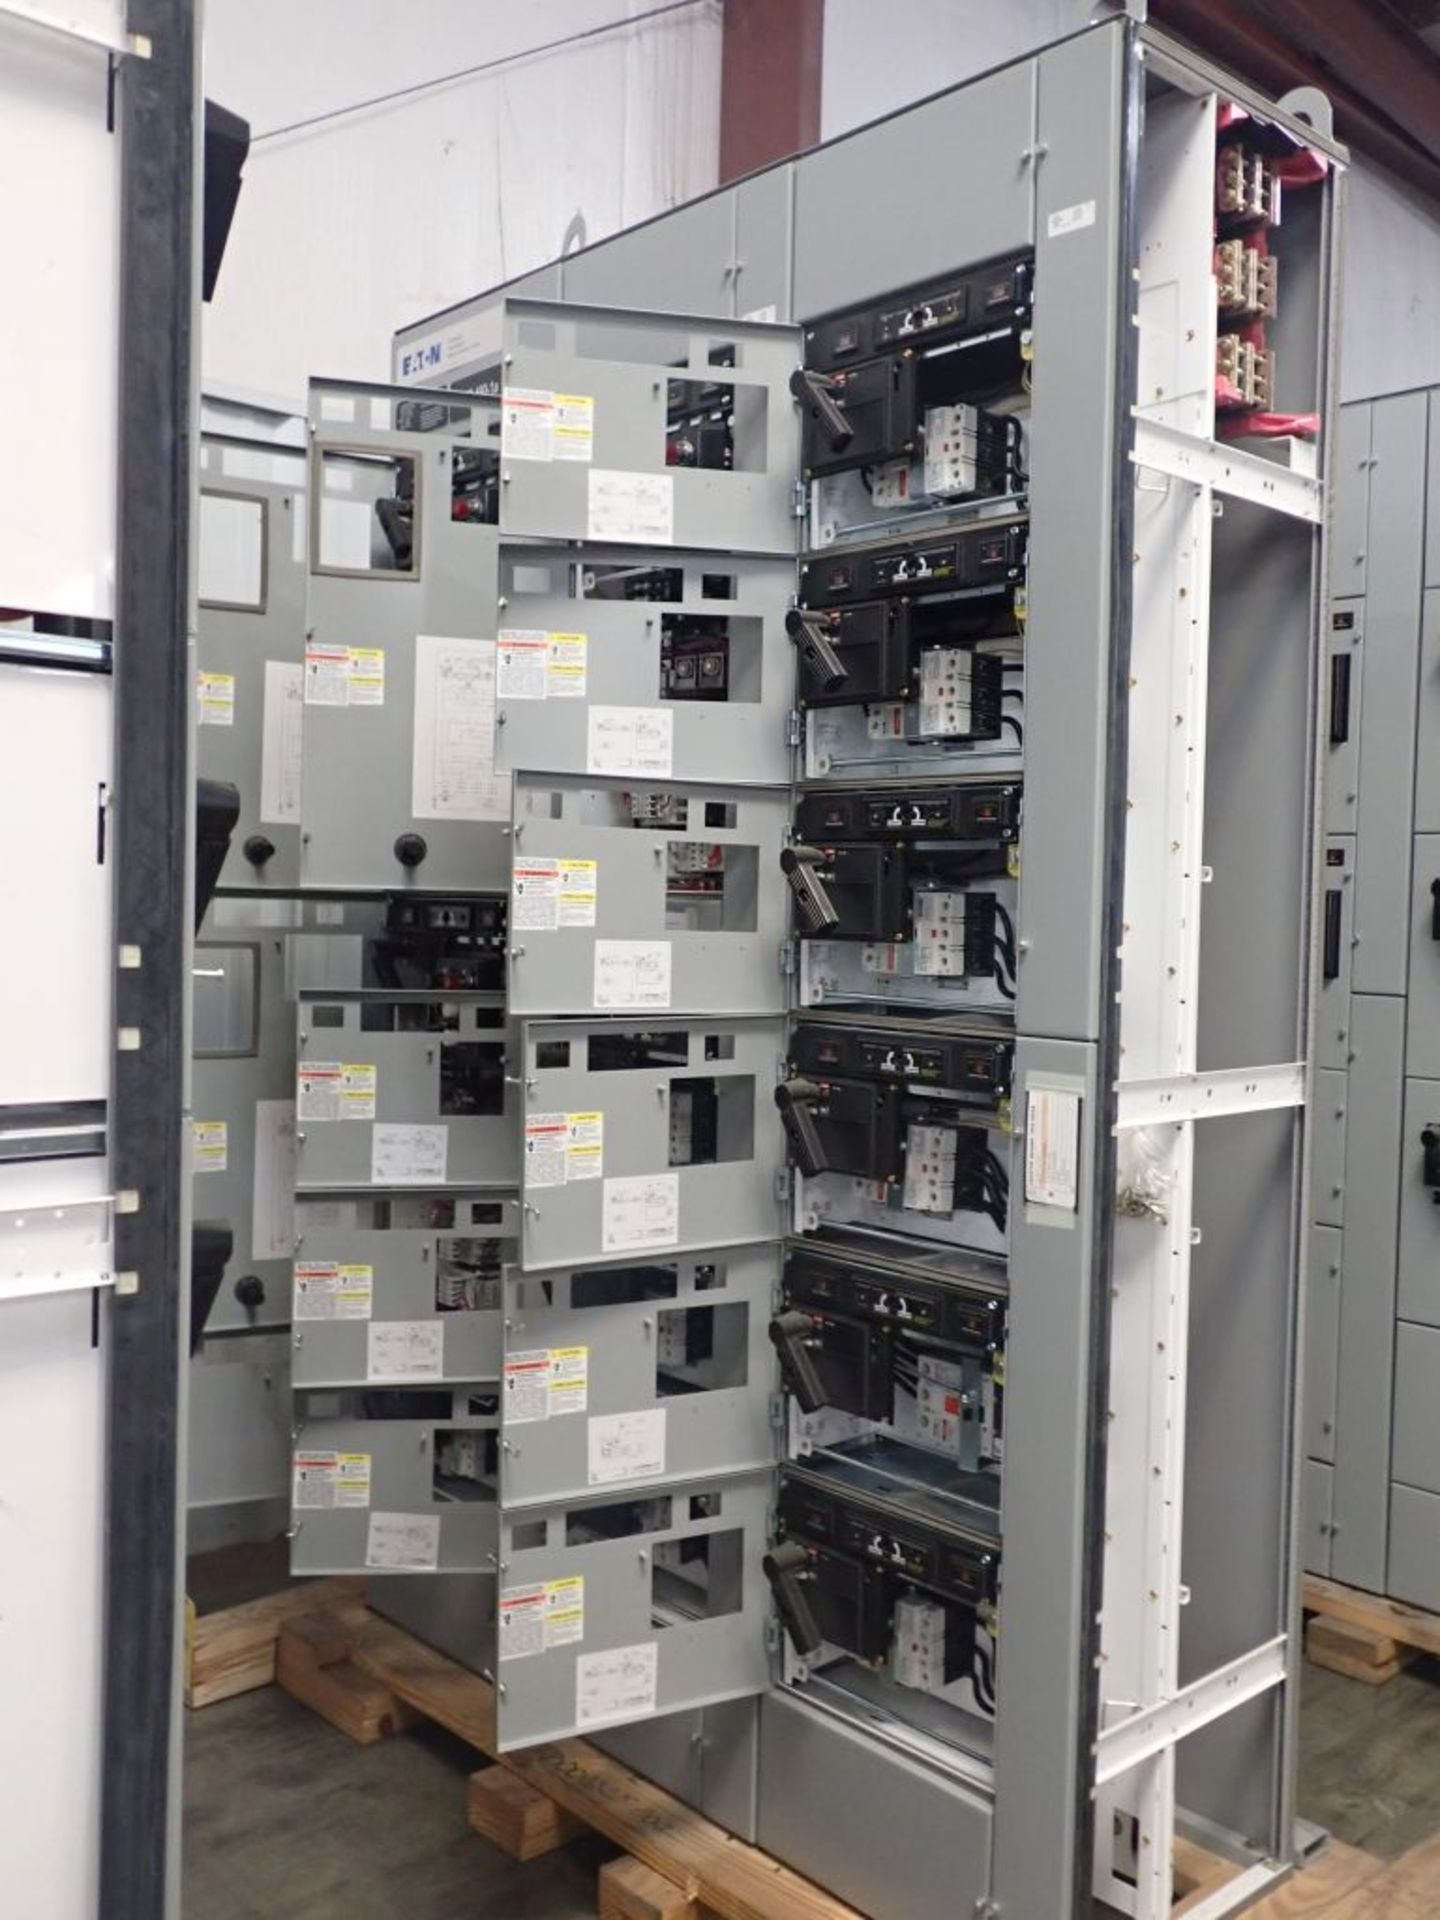 Eaton Freedom Flashgard Motor Control Center   (3) F216-15A-10HP; (1) FDRB-125A, with 150A - Image 5 of 57